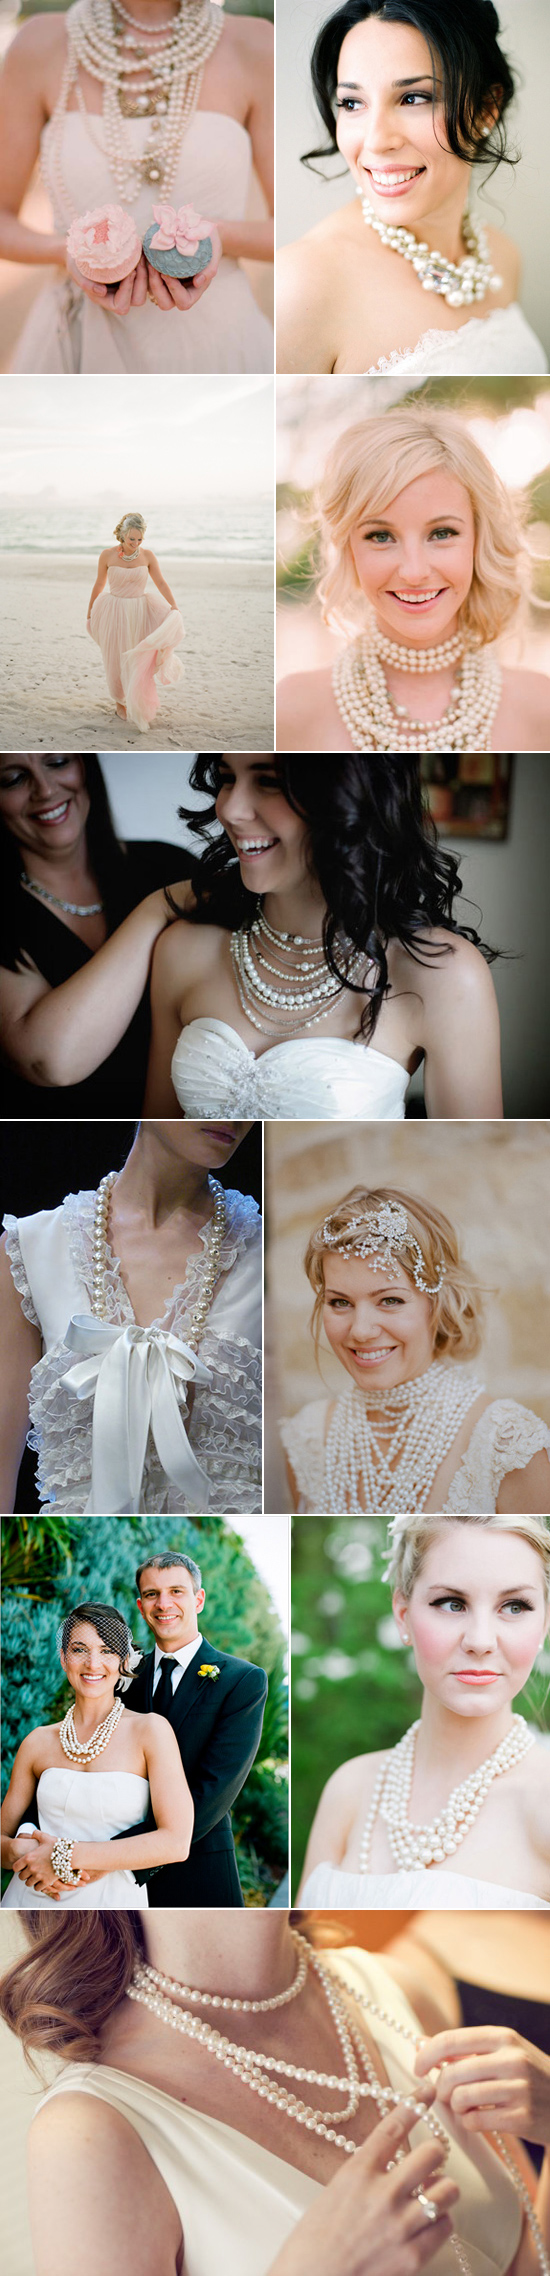 modern ways to wear pearls at your wedding Wedding Day Pearls